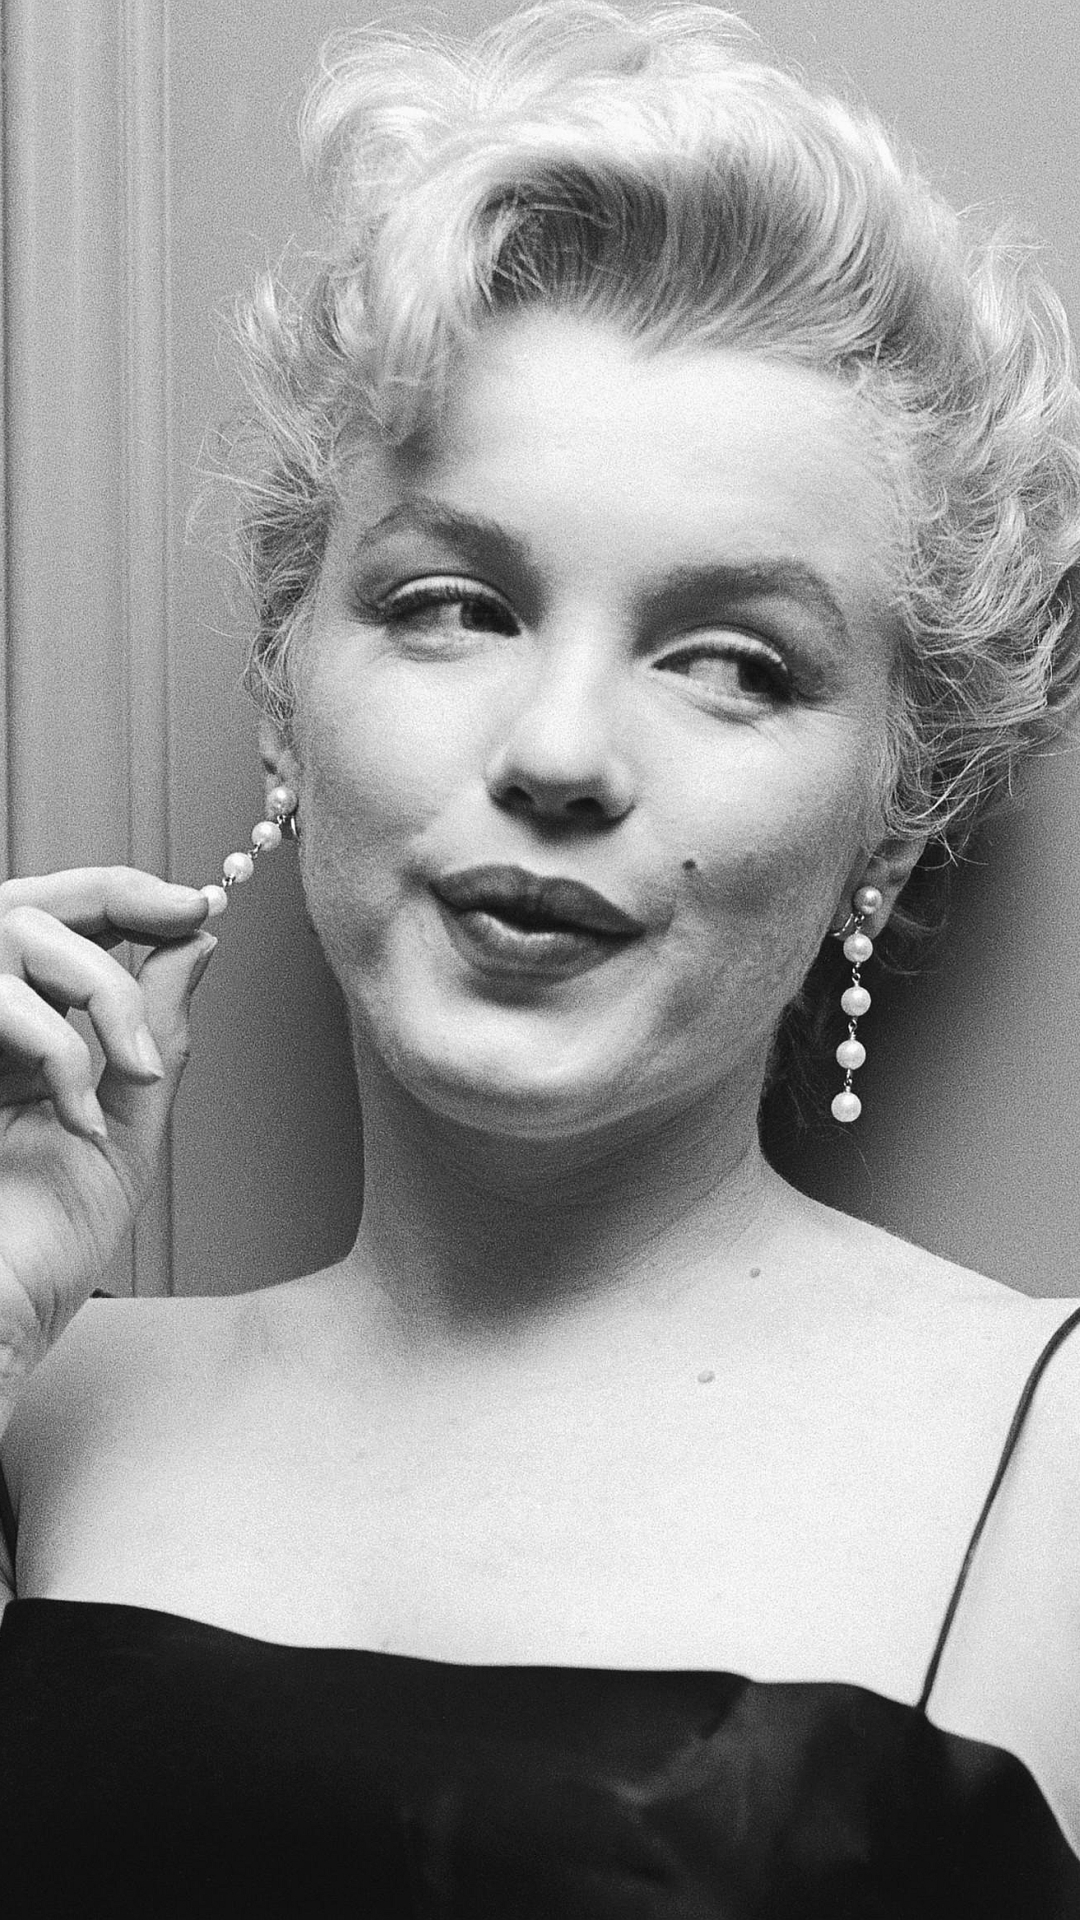 Marilyn monroe wallpaper iphone 7 plus celebritymarilyn monroe wallpaper id 487112 voltagebd Choice Image